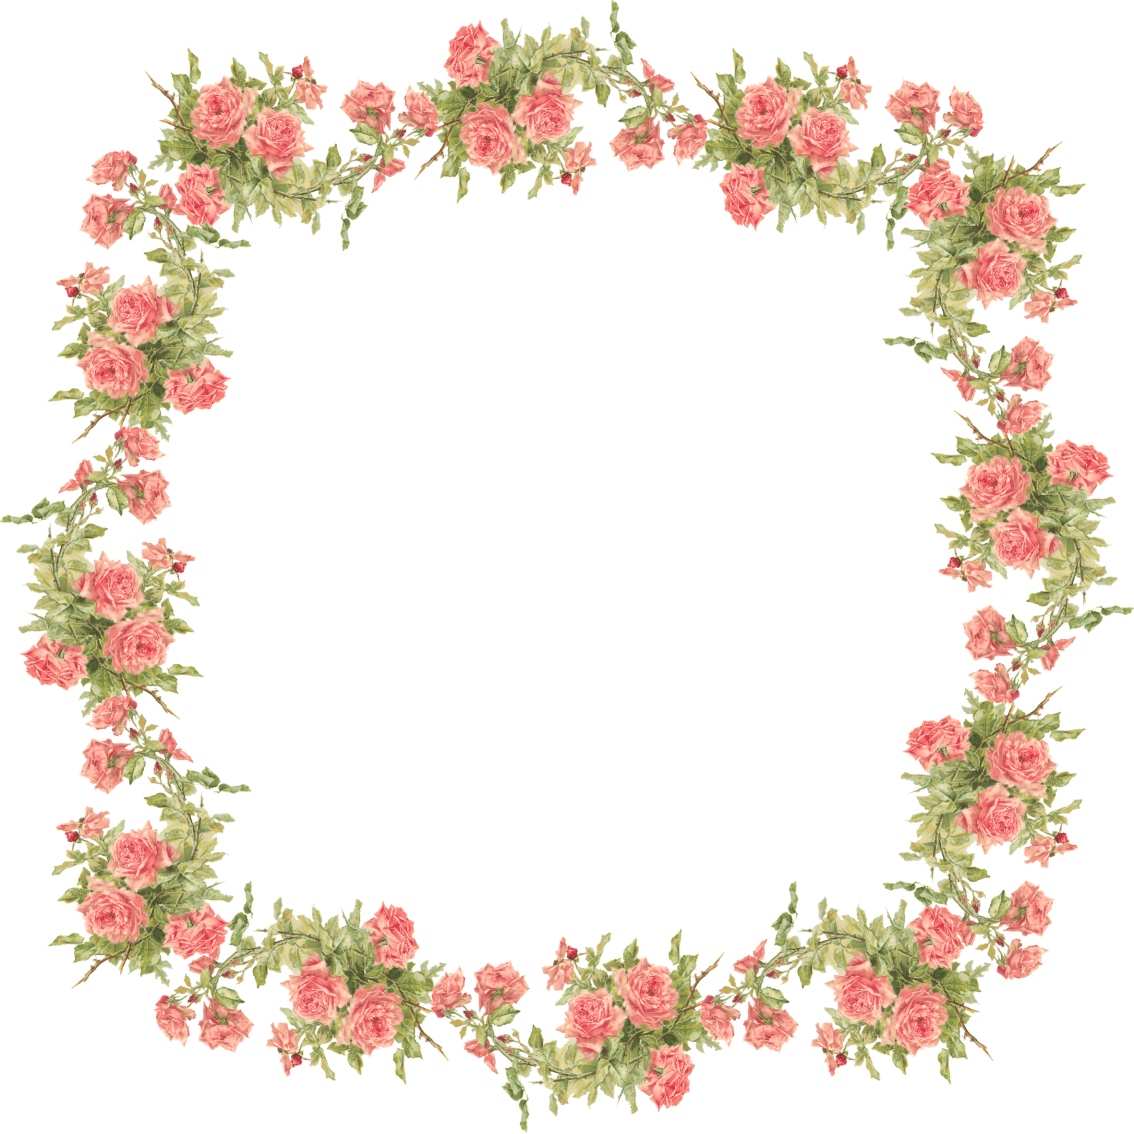 Peach flower clipart clipart library Catherine Klein – Peach Roses Digital Elements | Pinterest ... clipart library